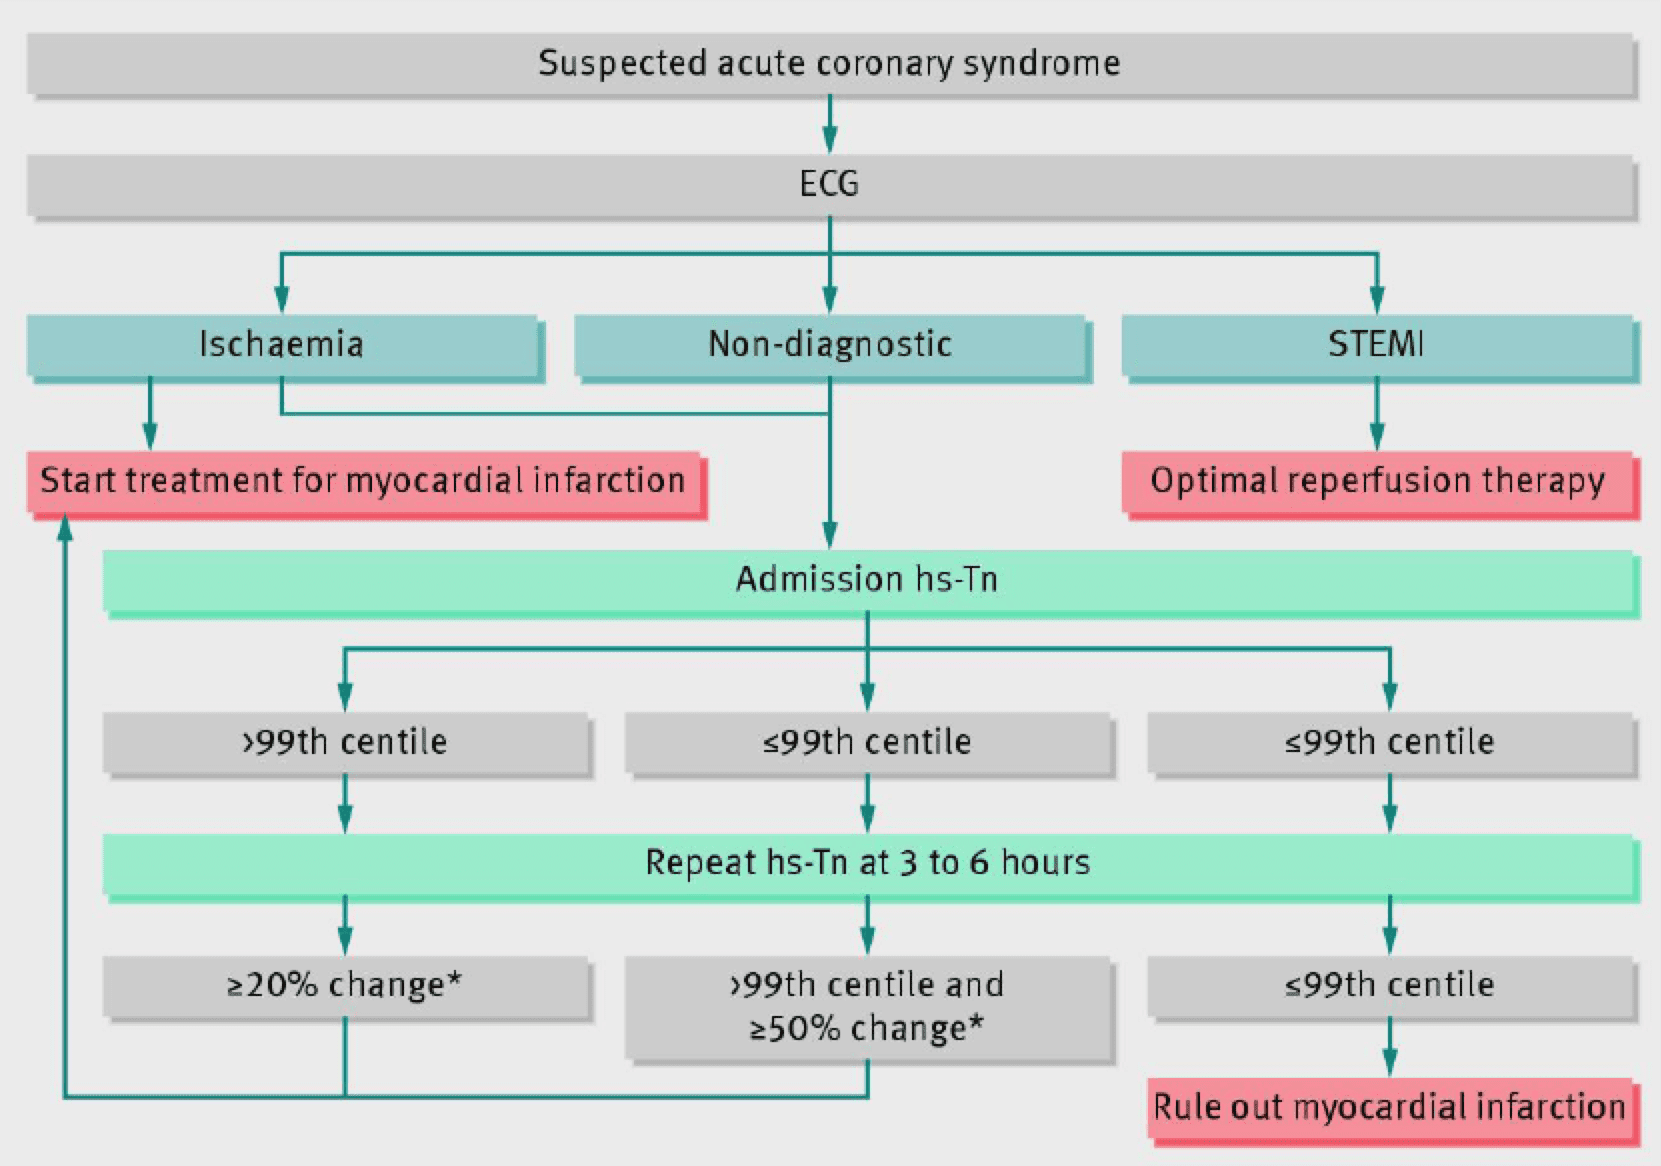 European Society of Cardiology Troponin Testing Recommendations